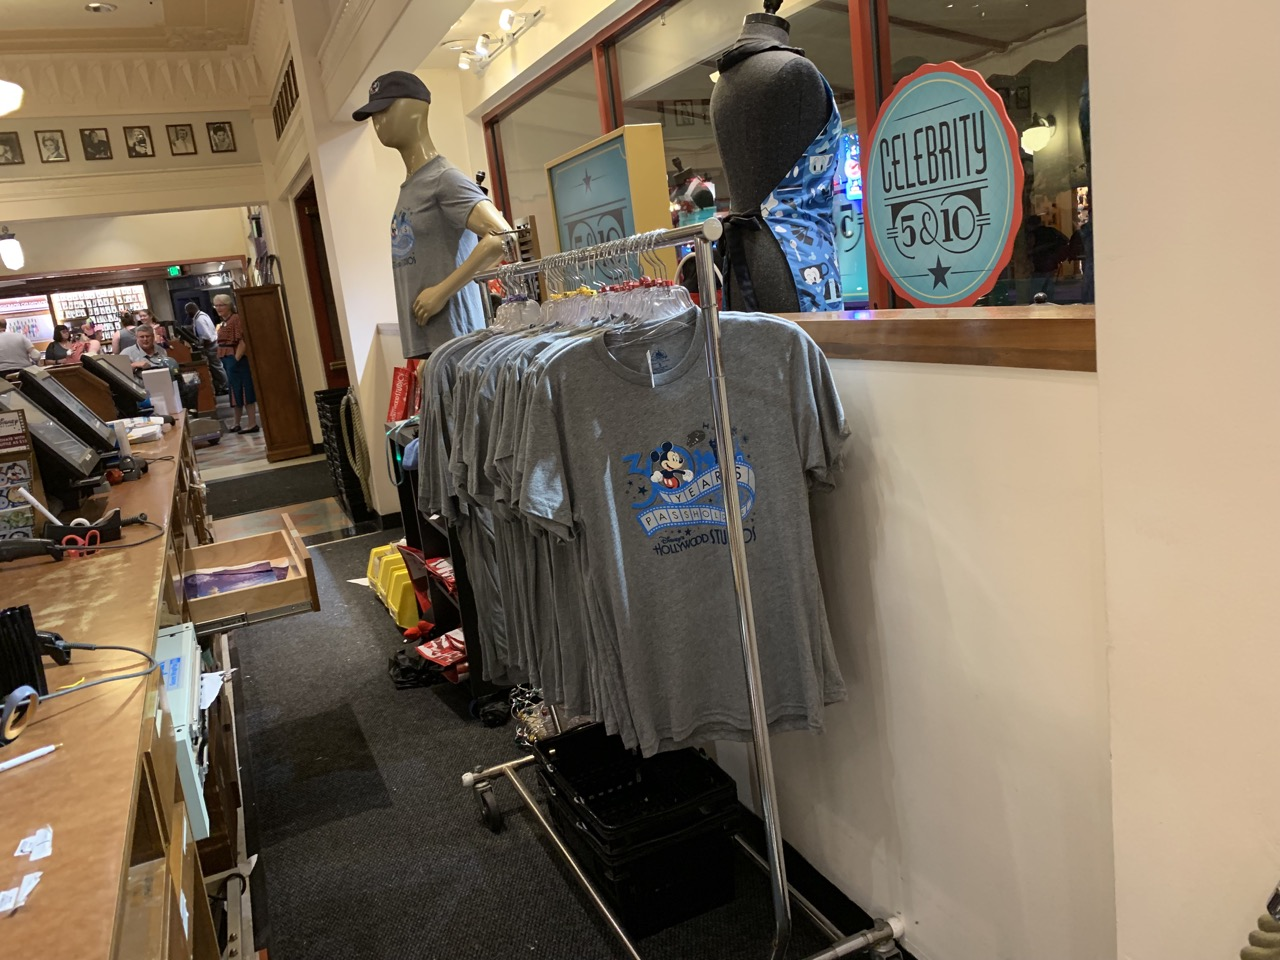 disney world trip report early summer 2019 day two 30th merchandise 04.jpeg